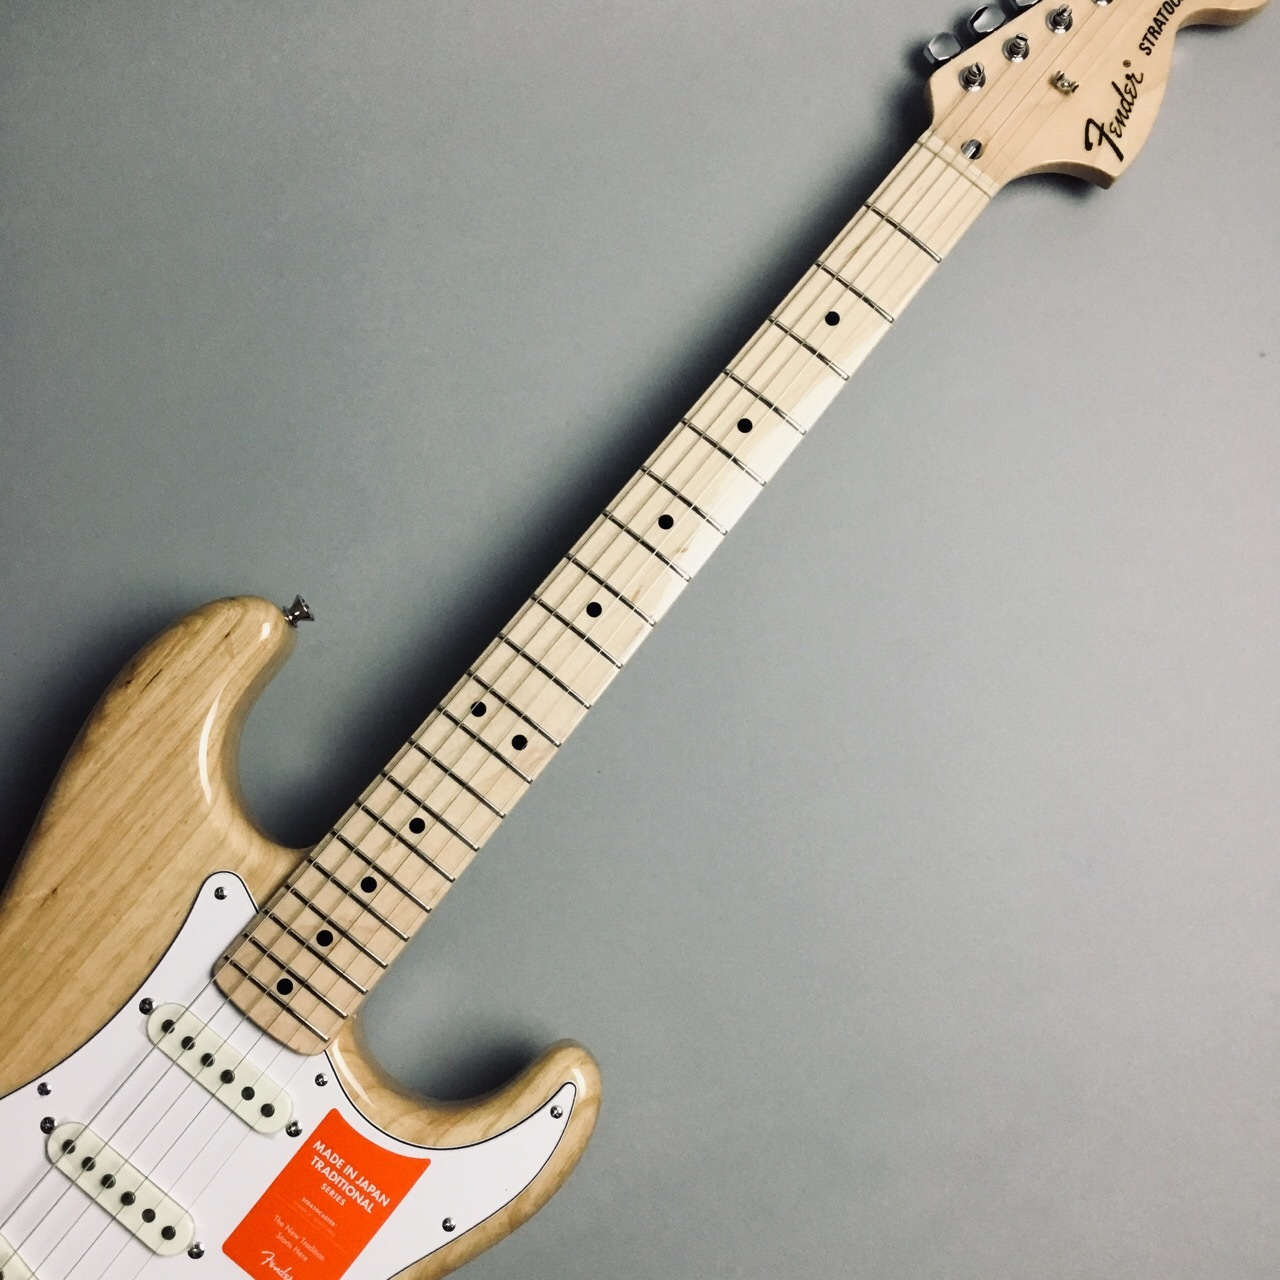 MADE IN JAPAN TRADITIONAL 70S STRATOCASTERの指板画像